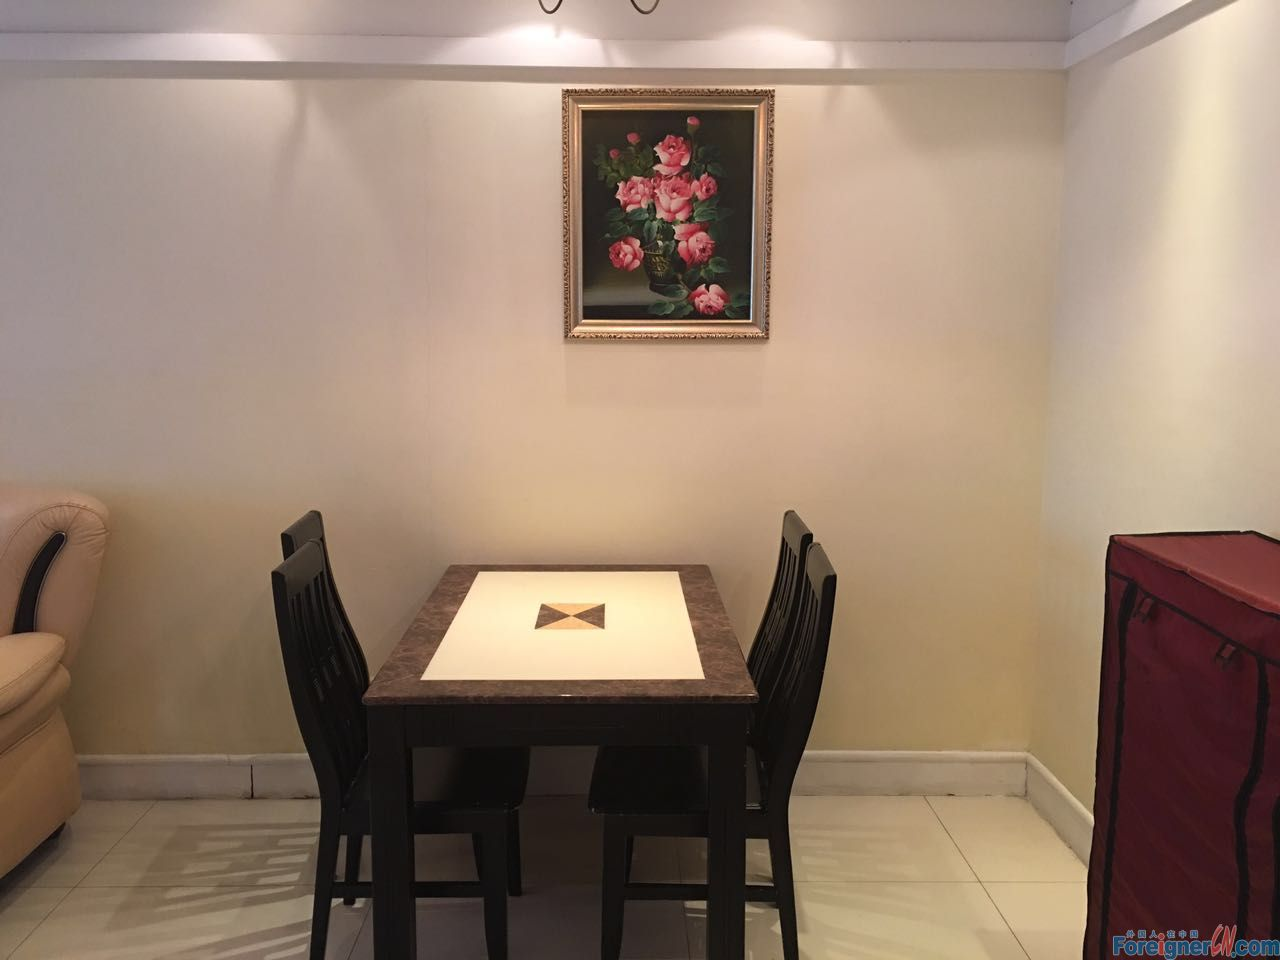 3BR-apt NEW and very clean with very good price in Huali Rd. Zhujiang new town